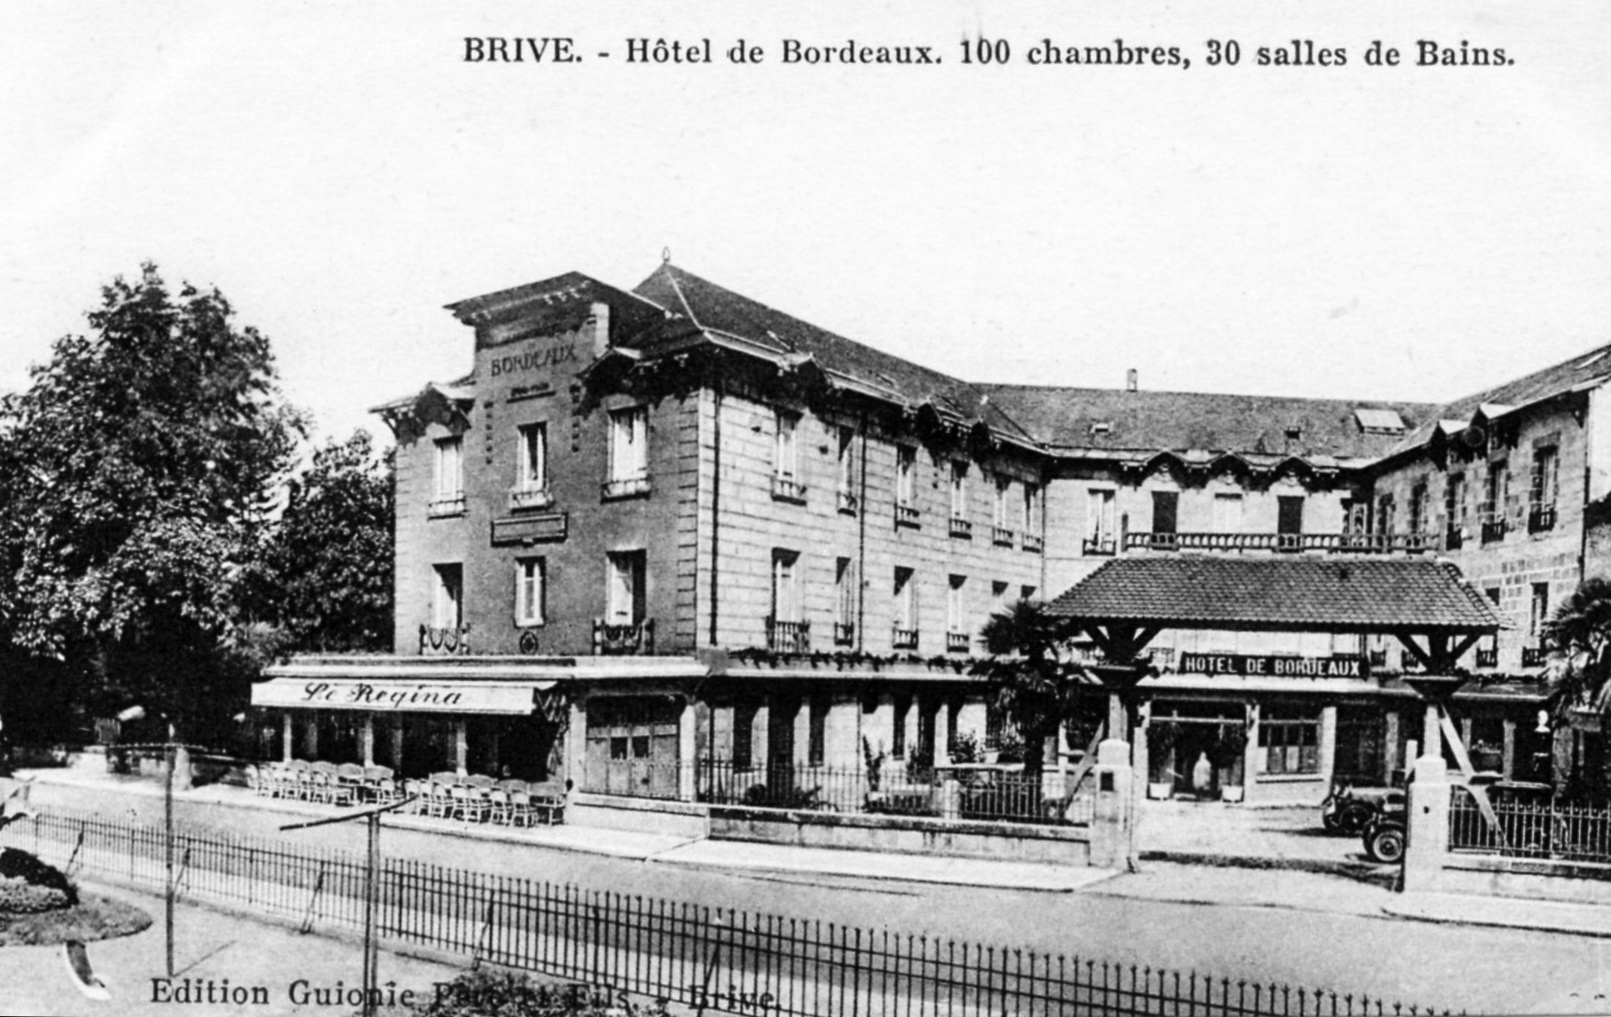 Photo brive la gaillarde 19100 h tel de bordeaux for Plan ville de brive la gaillarde 19100